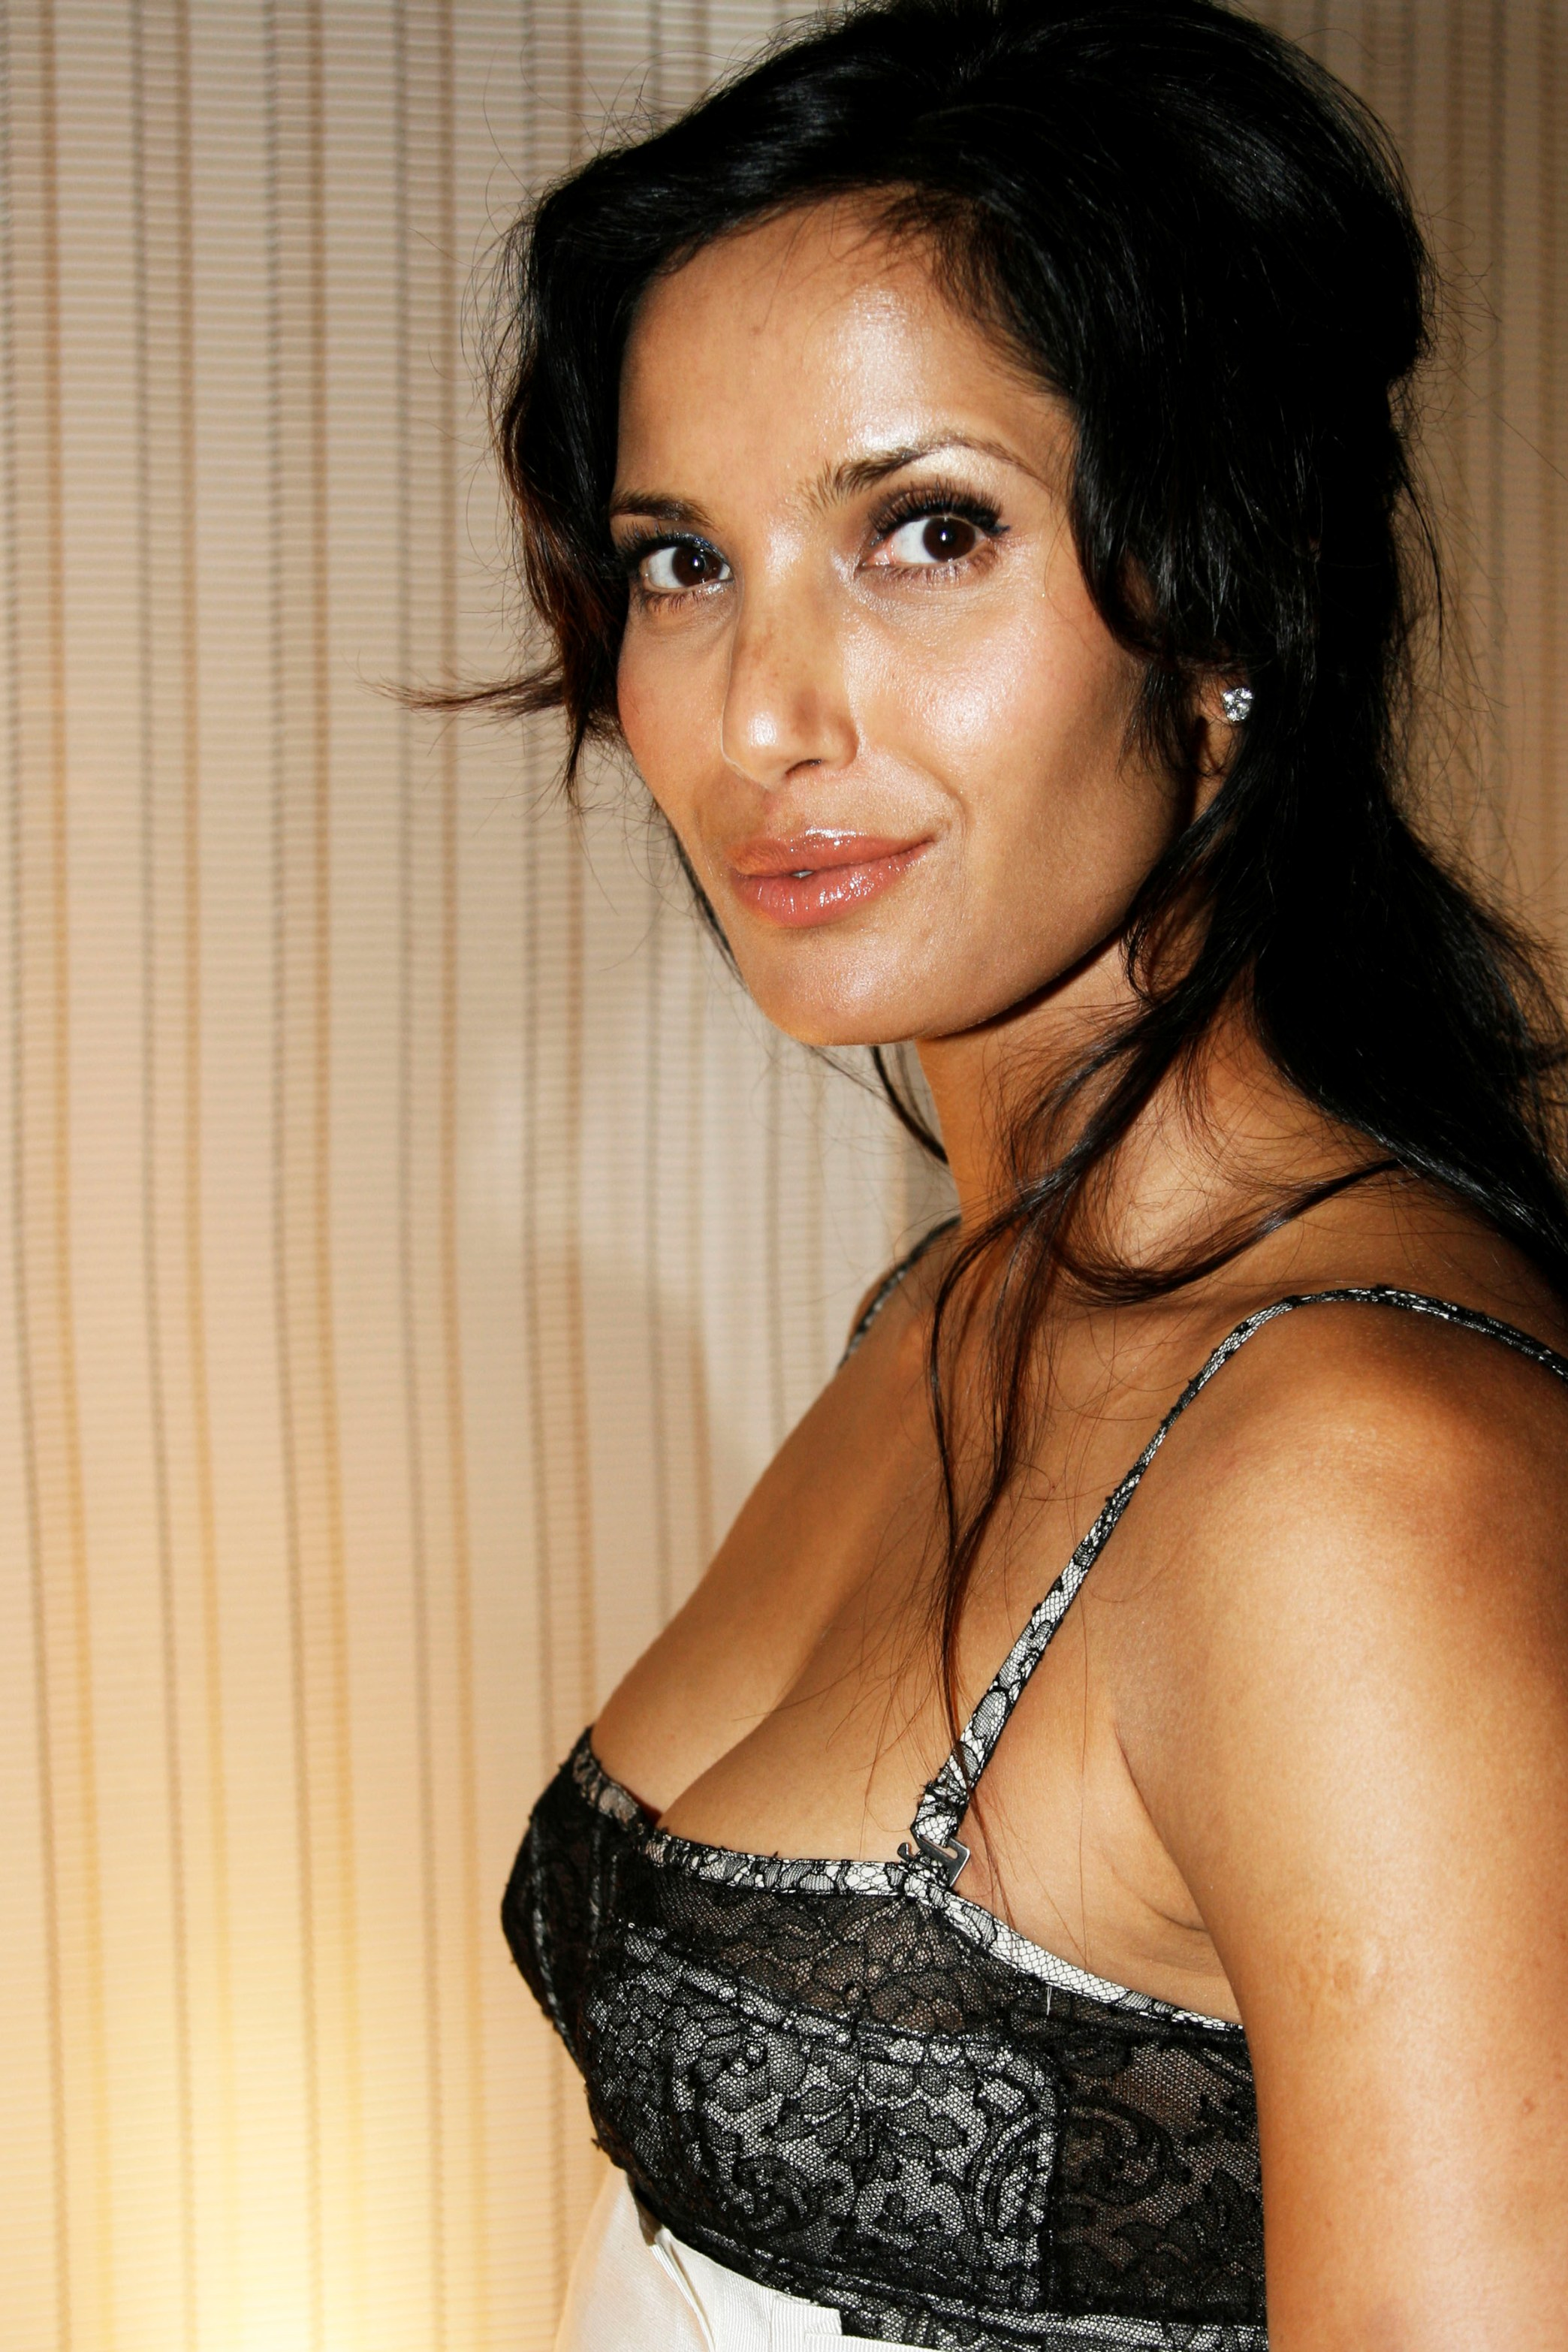 Padma Lakshmi - Wallpaper Actress